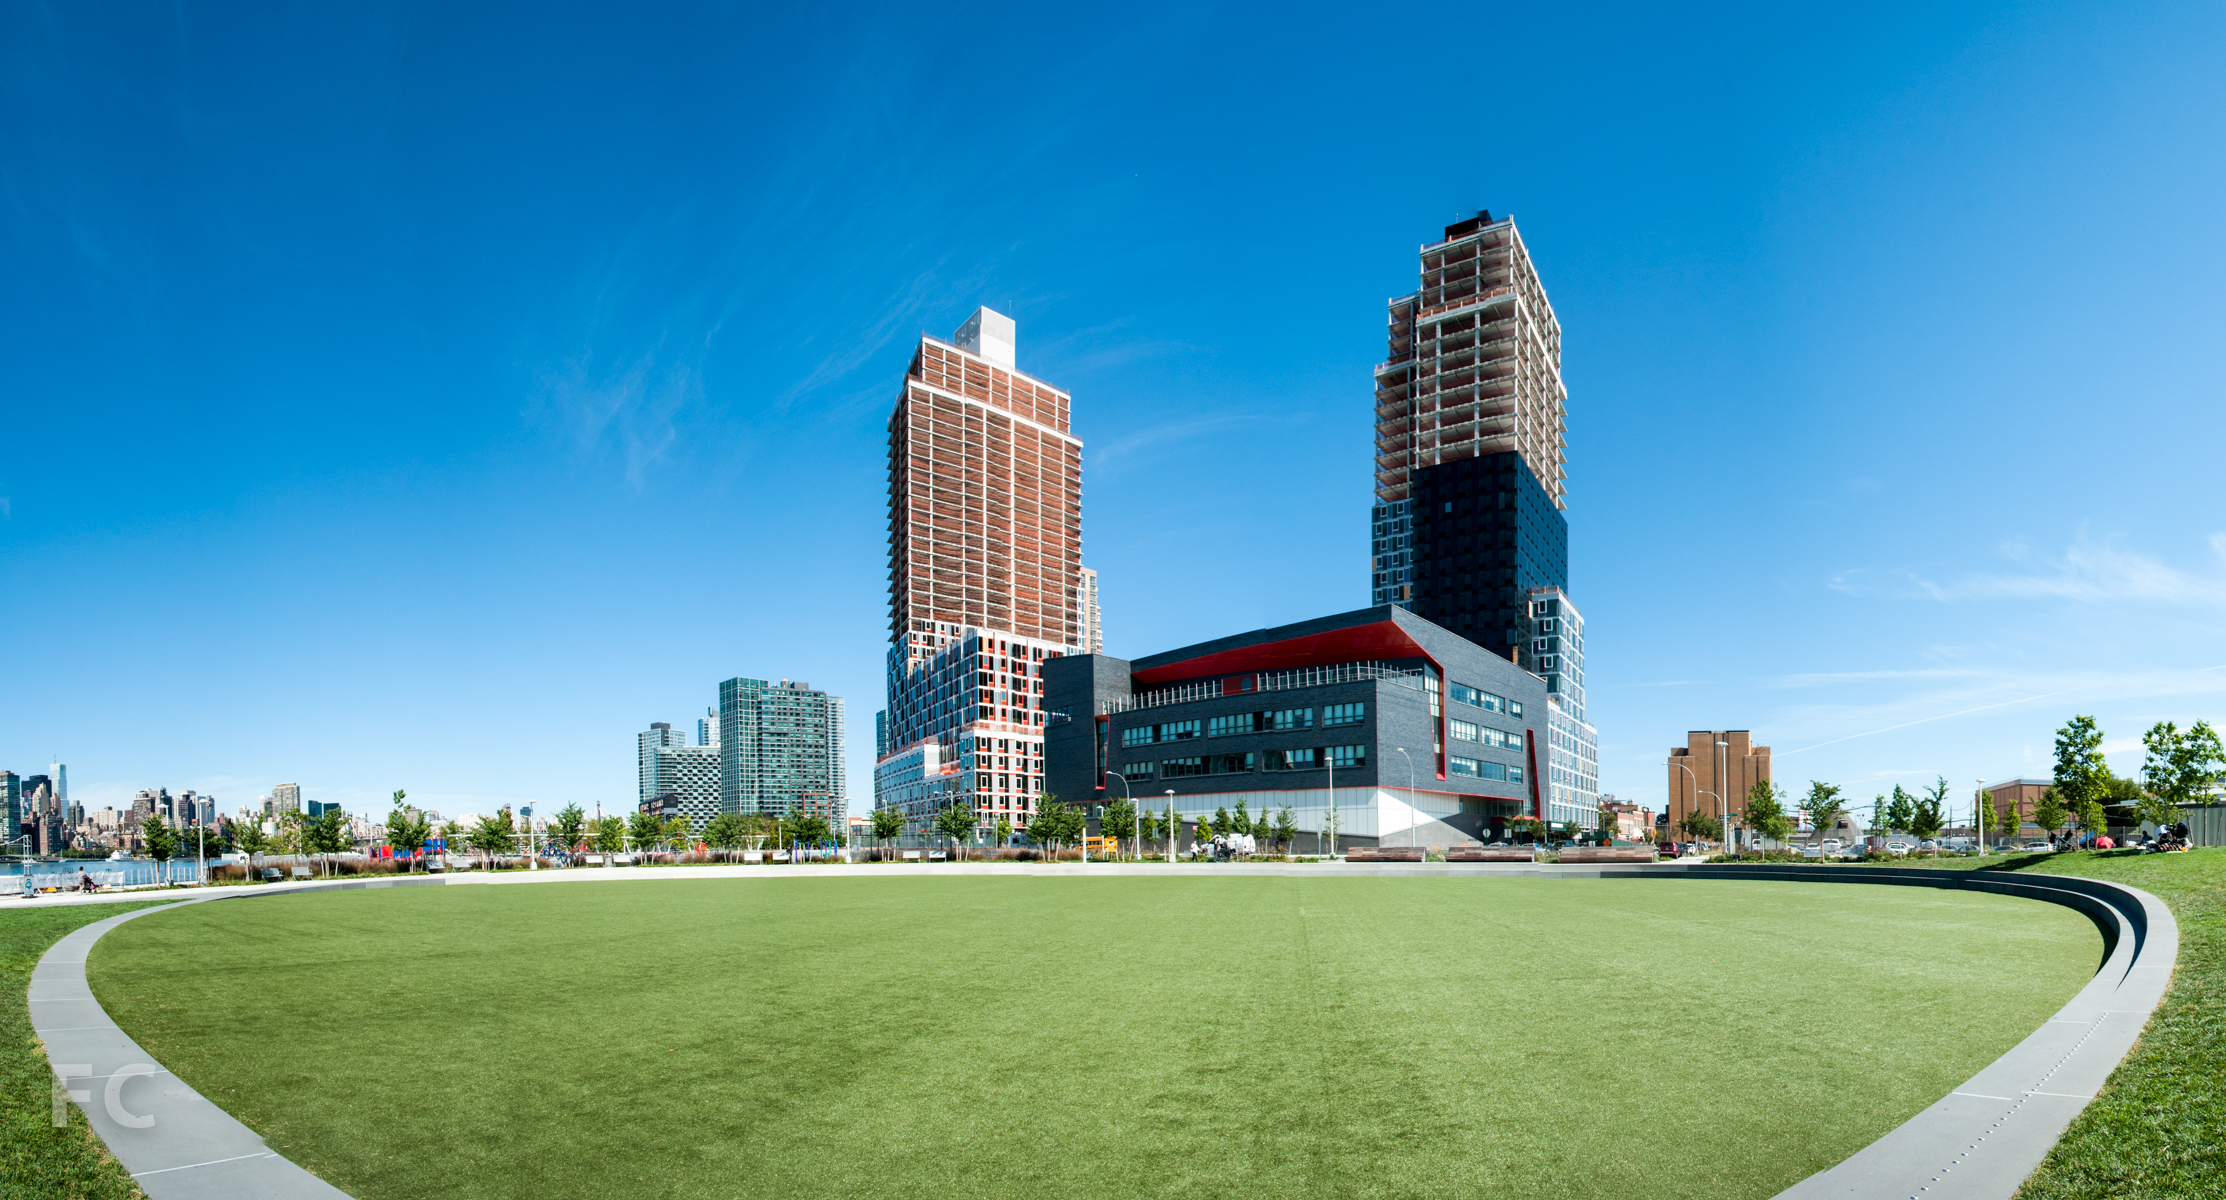 Building A (left) and Building B (right) from the oval green at Hunters Point South Park.